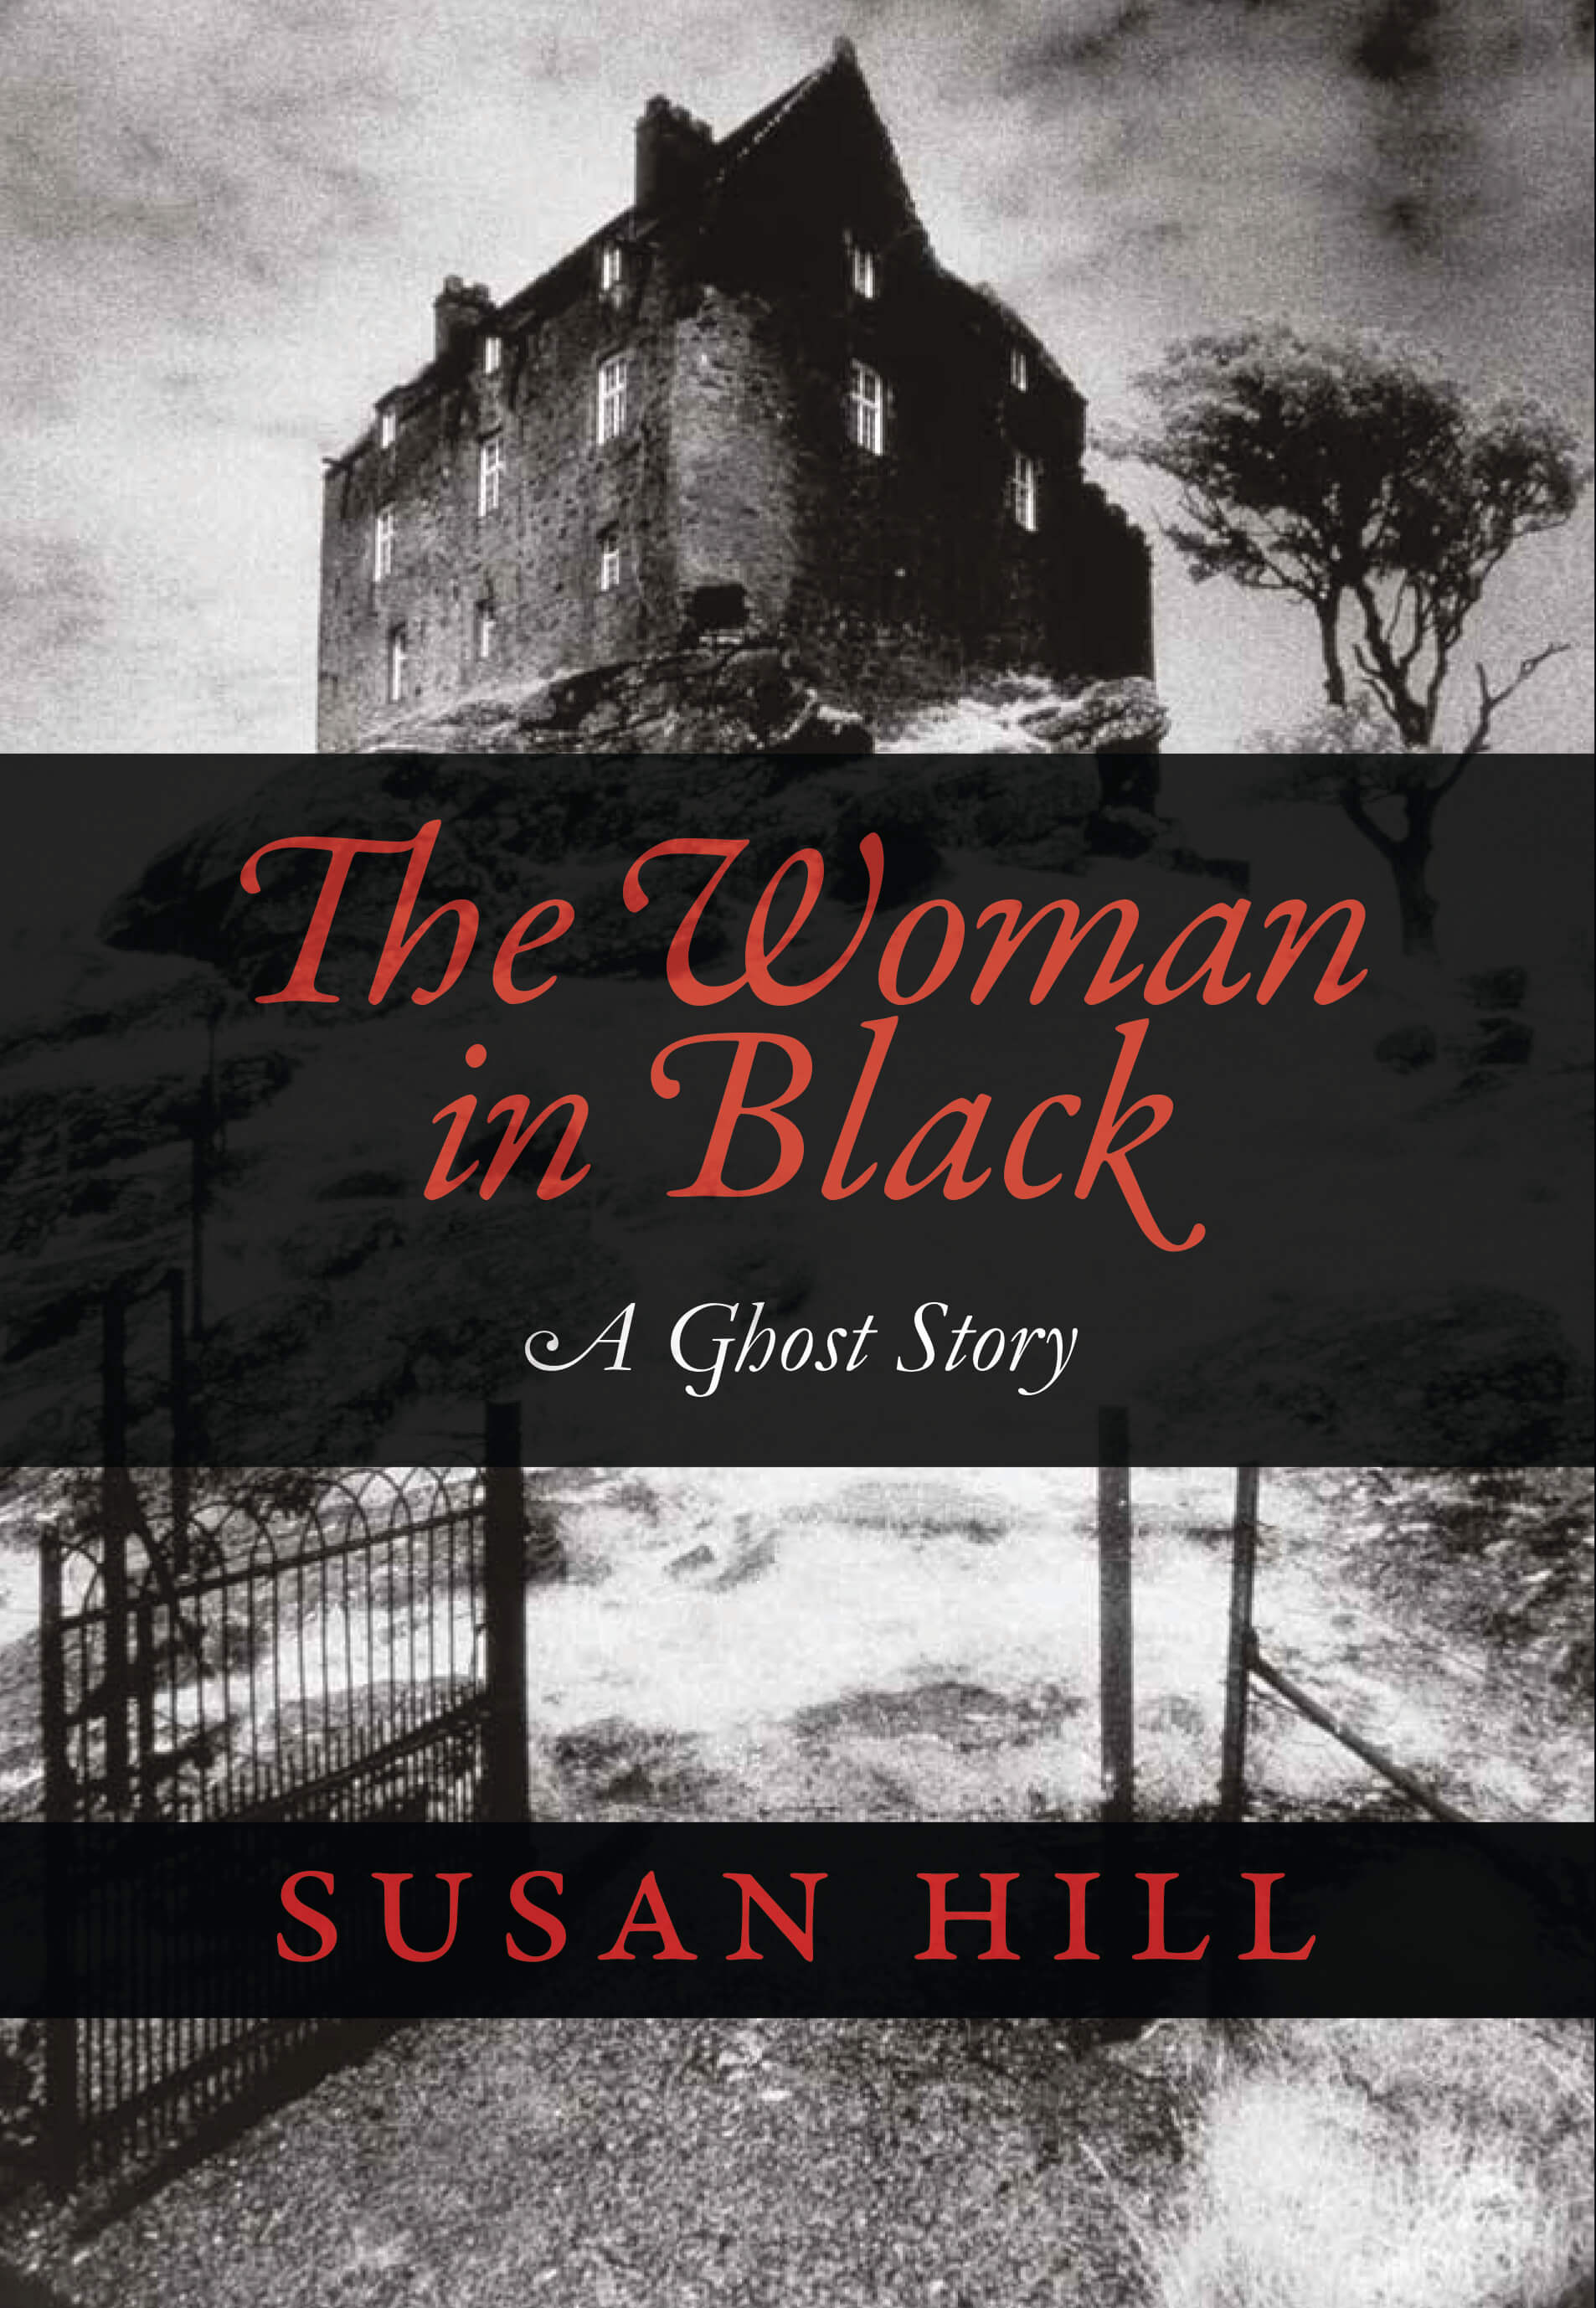 The Woman In Black book cover image